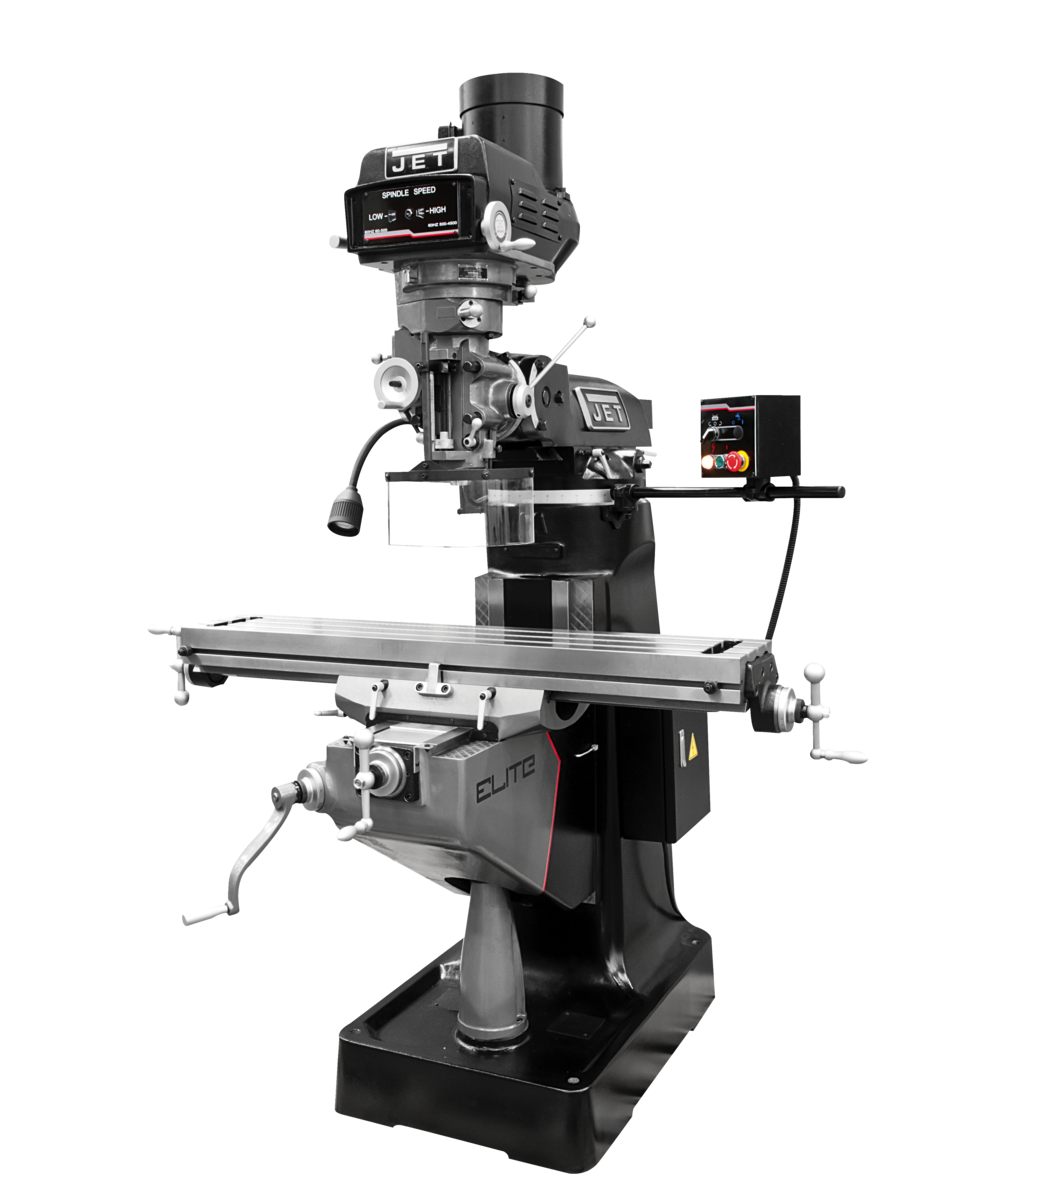 ETM-949 Mill with 3-Axis ACU-RITE 303 (Quill) DRO and Servo X, Y, Z-Axis Powerfeeds and USA Air Powered Draw Bar